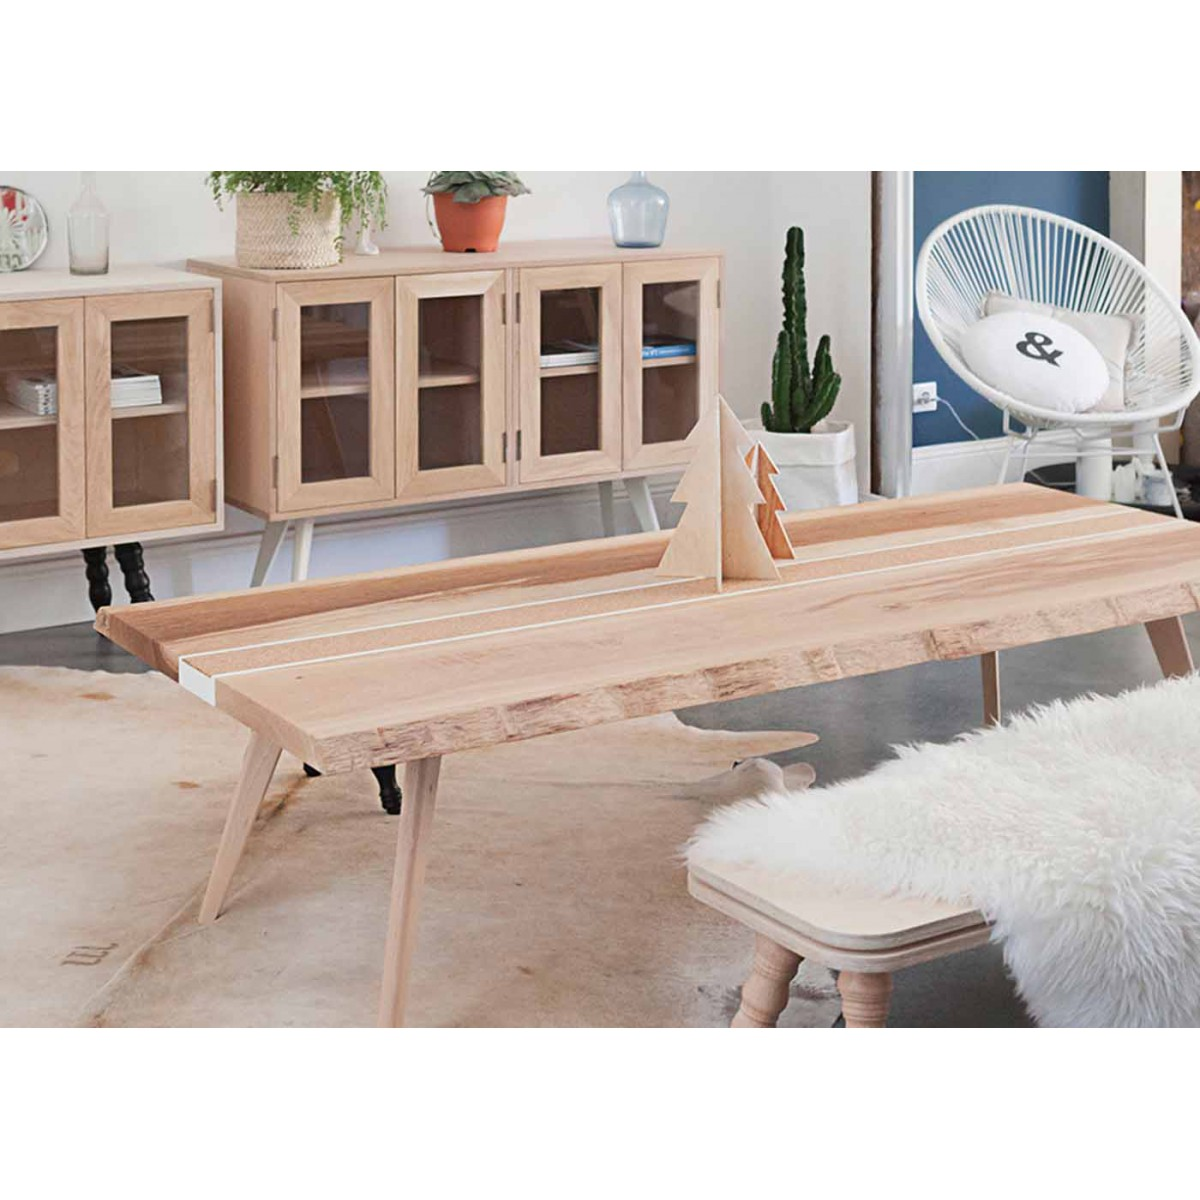 table basse design scandinave en ch ne massif tray blomkal. Black Bedroom Furniture Sets. Home Design Ideas